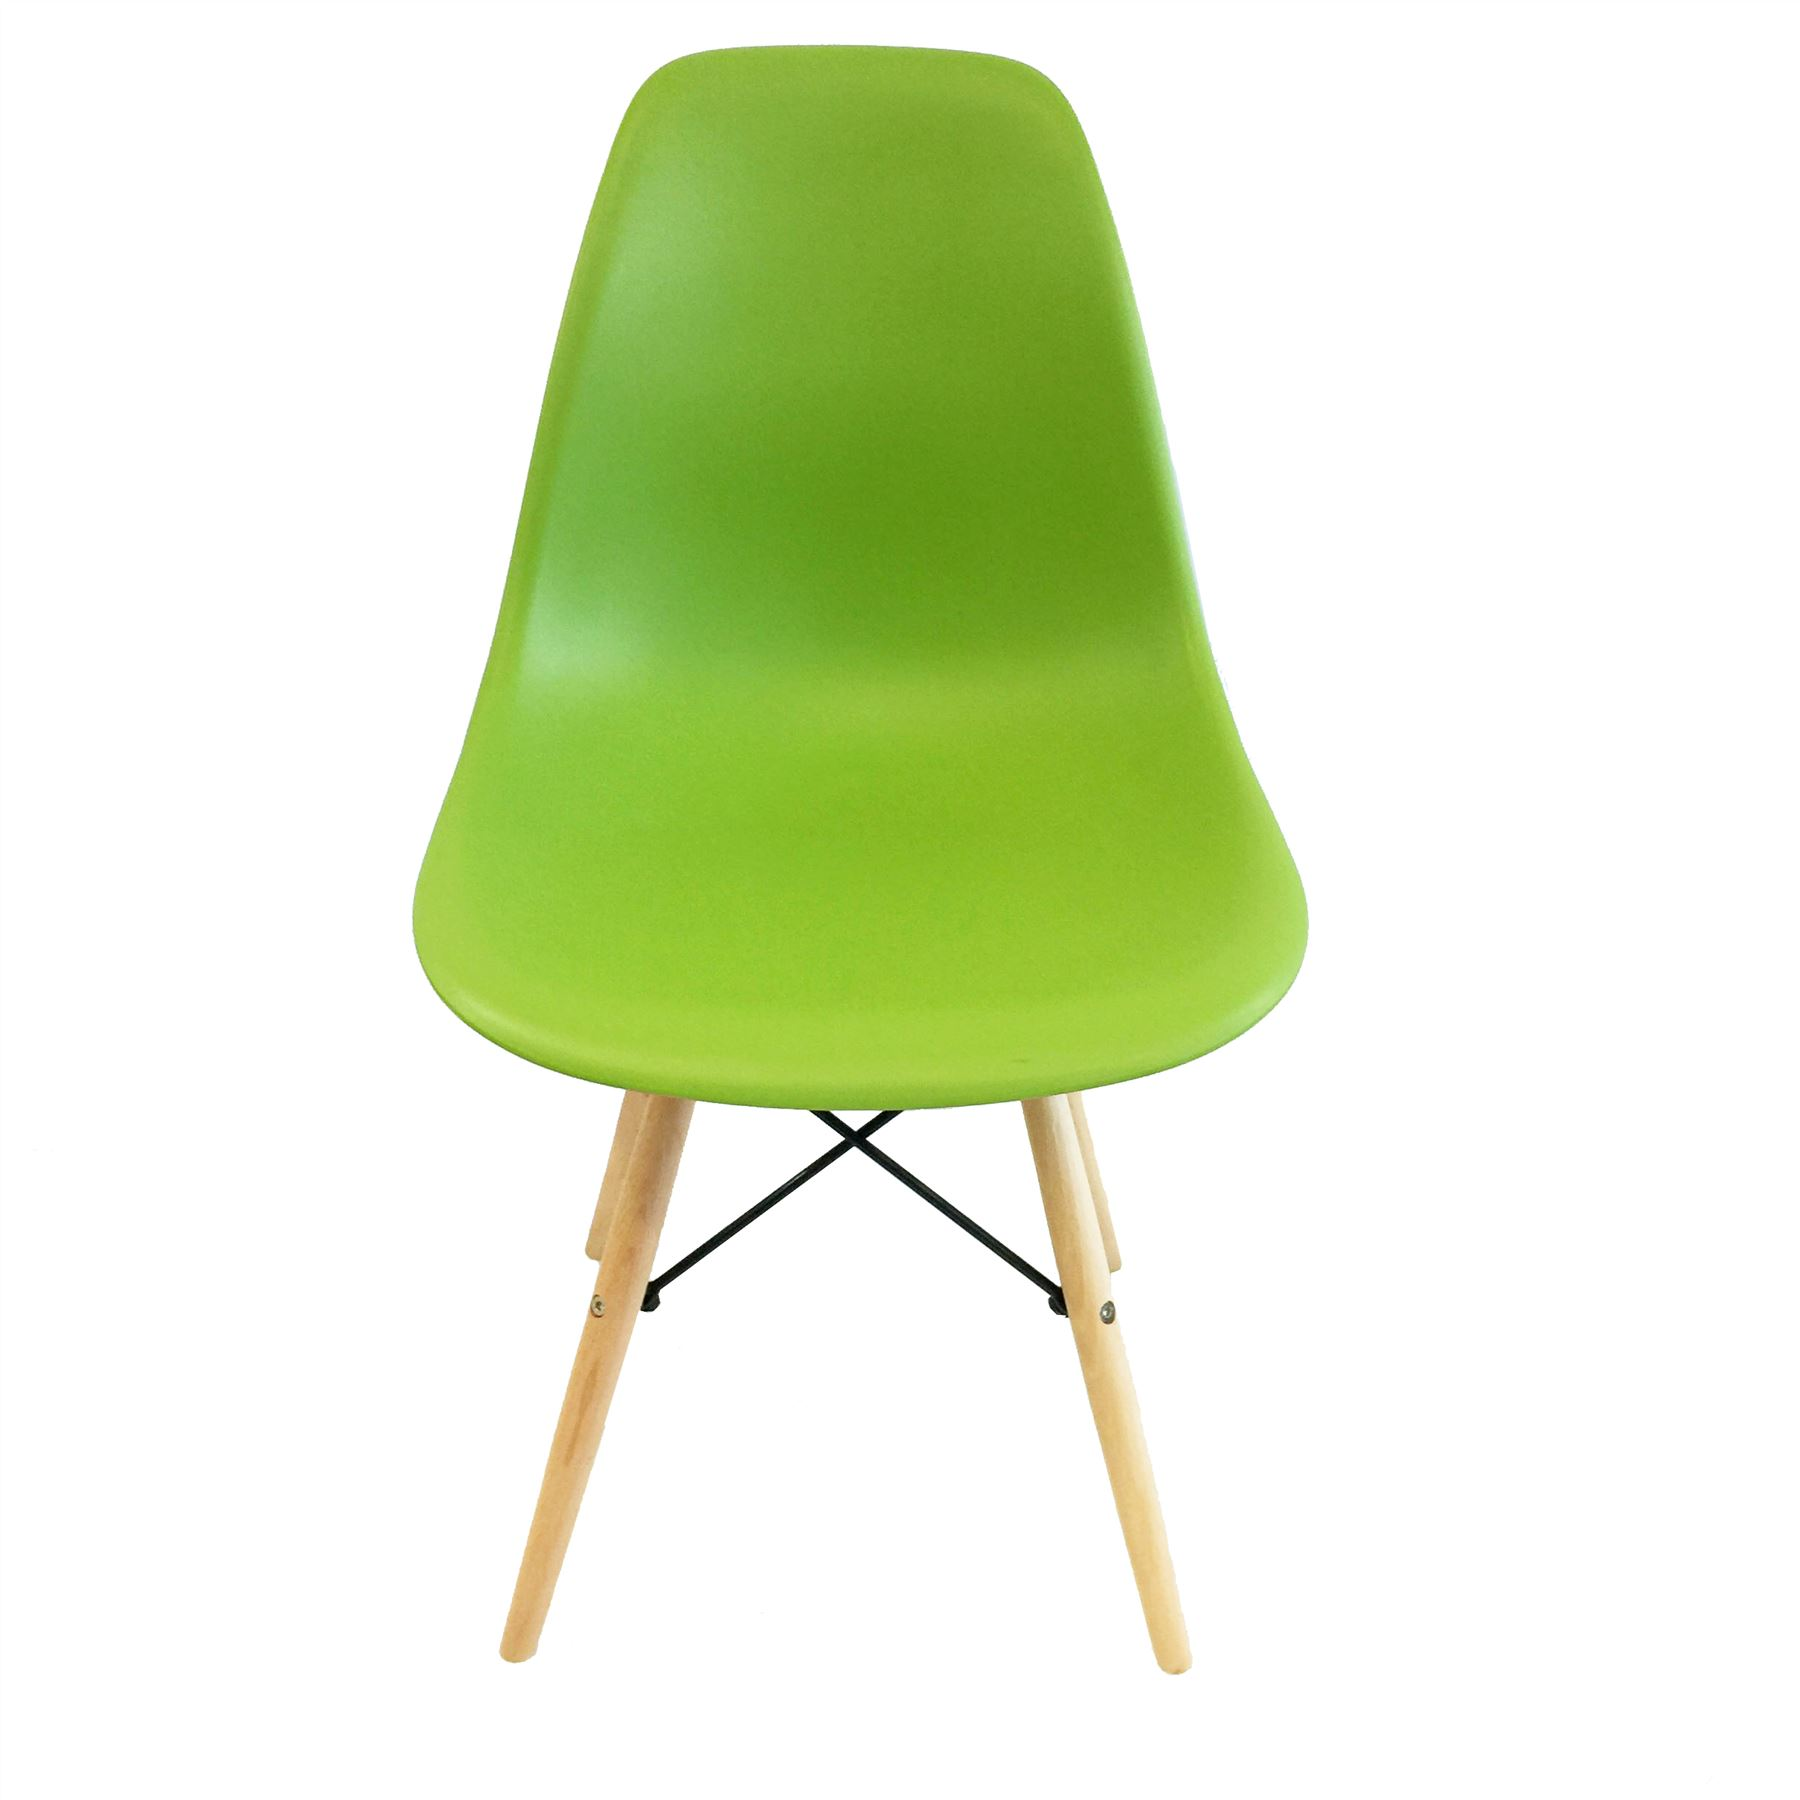 Retro Dining Chairs DSW Eiffel Inspired Wooden Legs